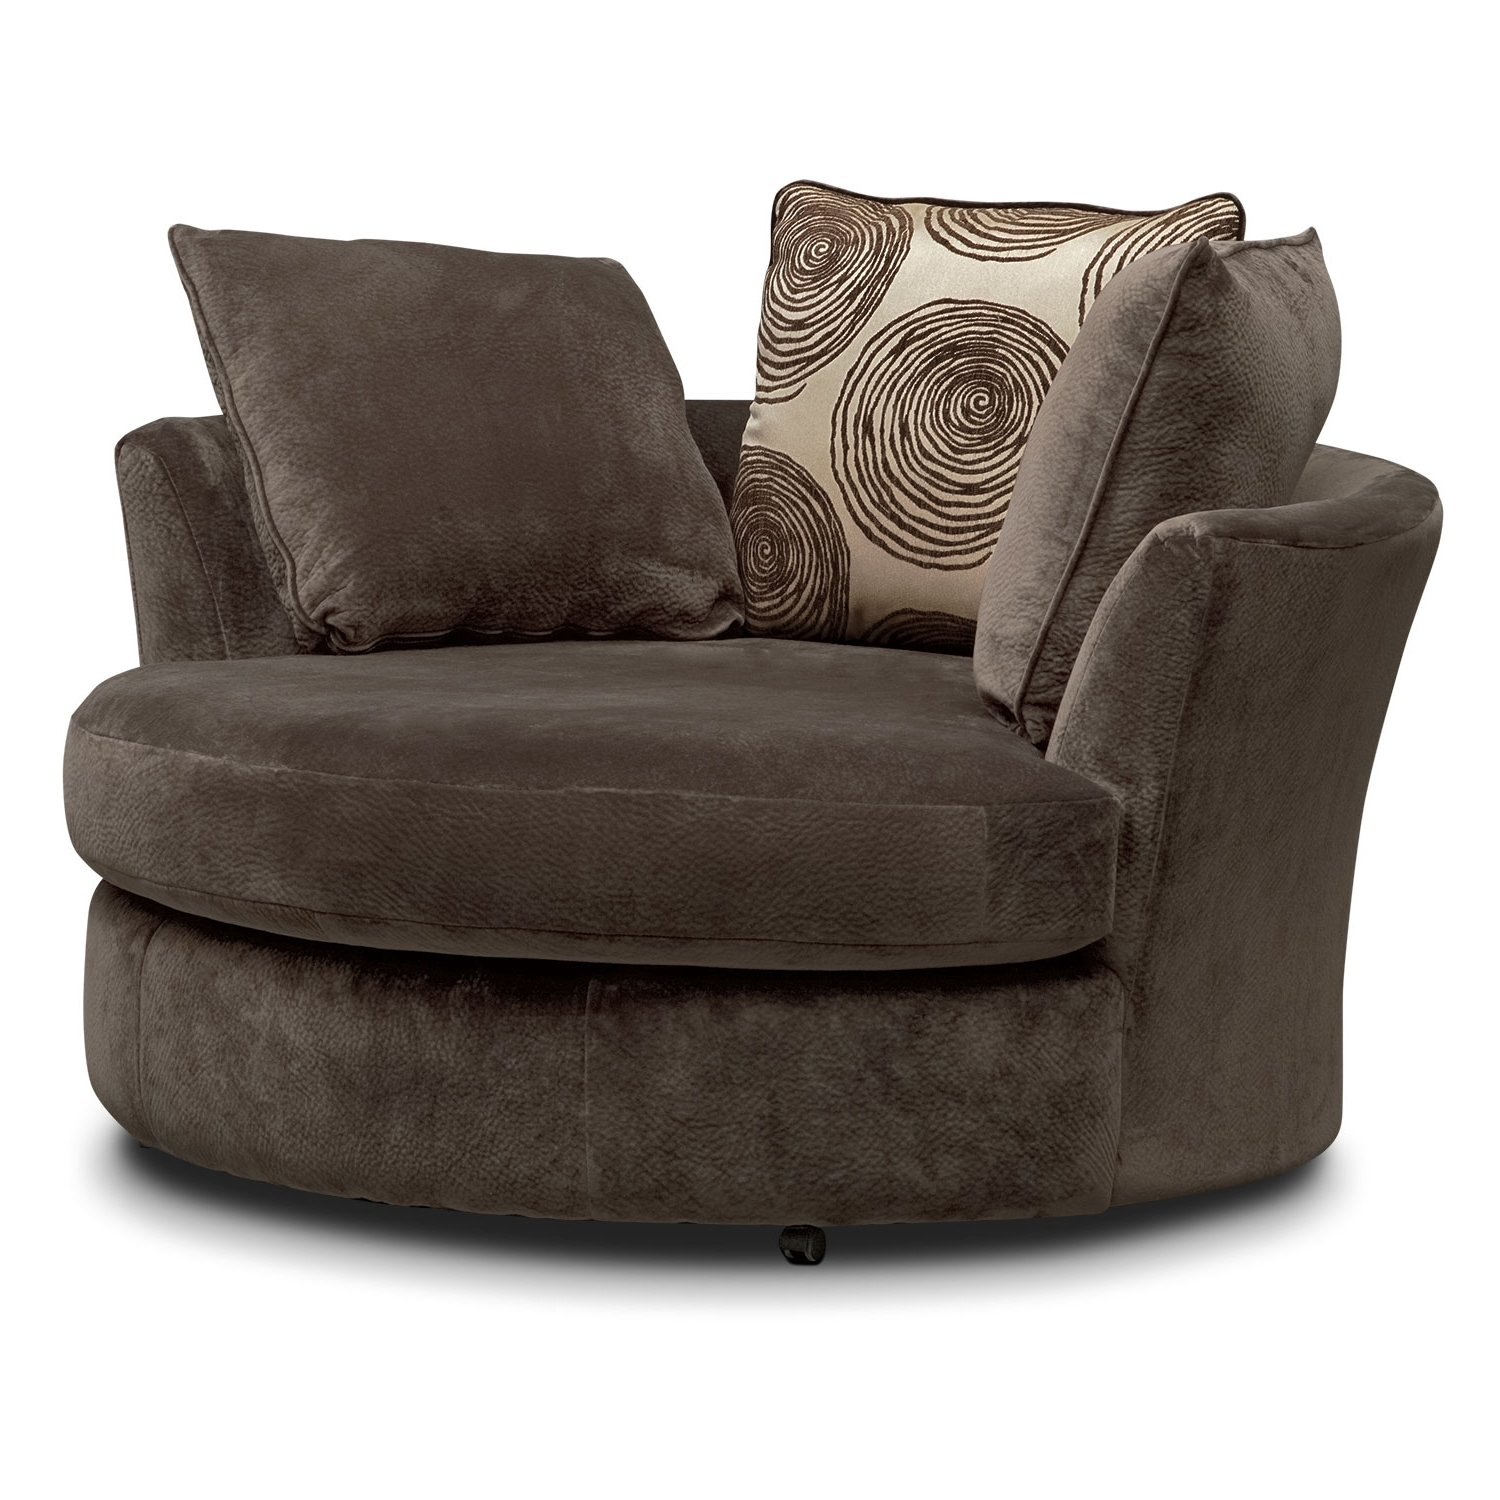 Most Popular Swivel Sofa Chairs Within Fancy Swivel Sofa Chair 41 With Additional Sofa Table Ideas With (View 9 of 20)